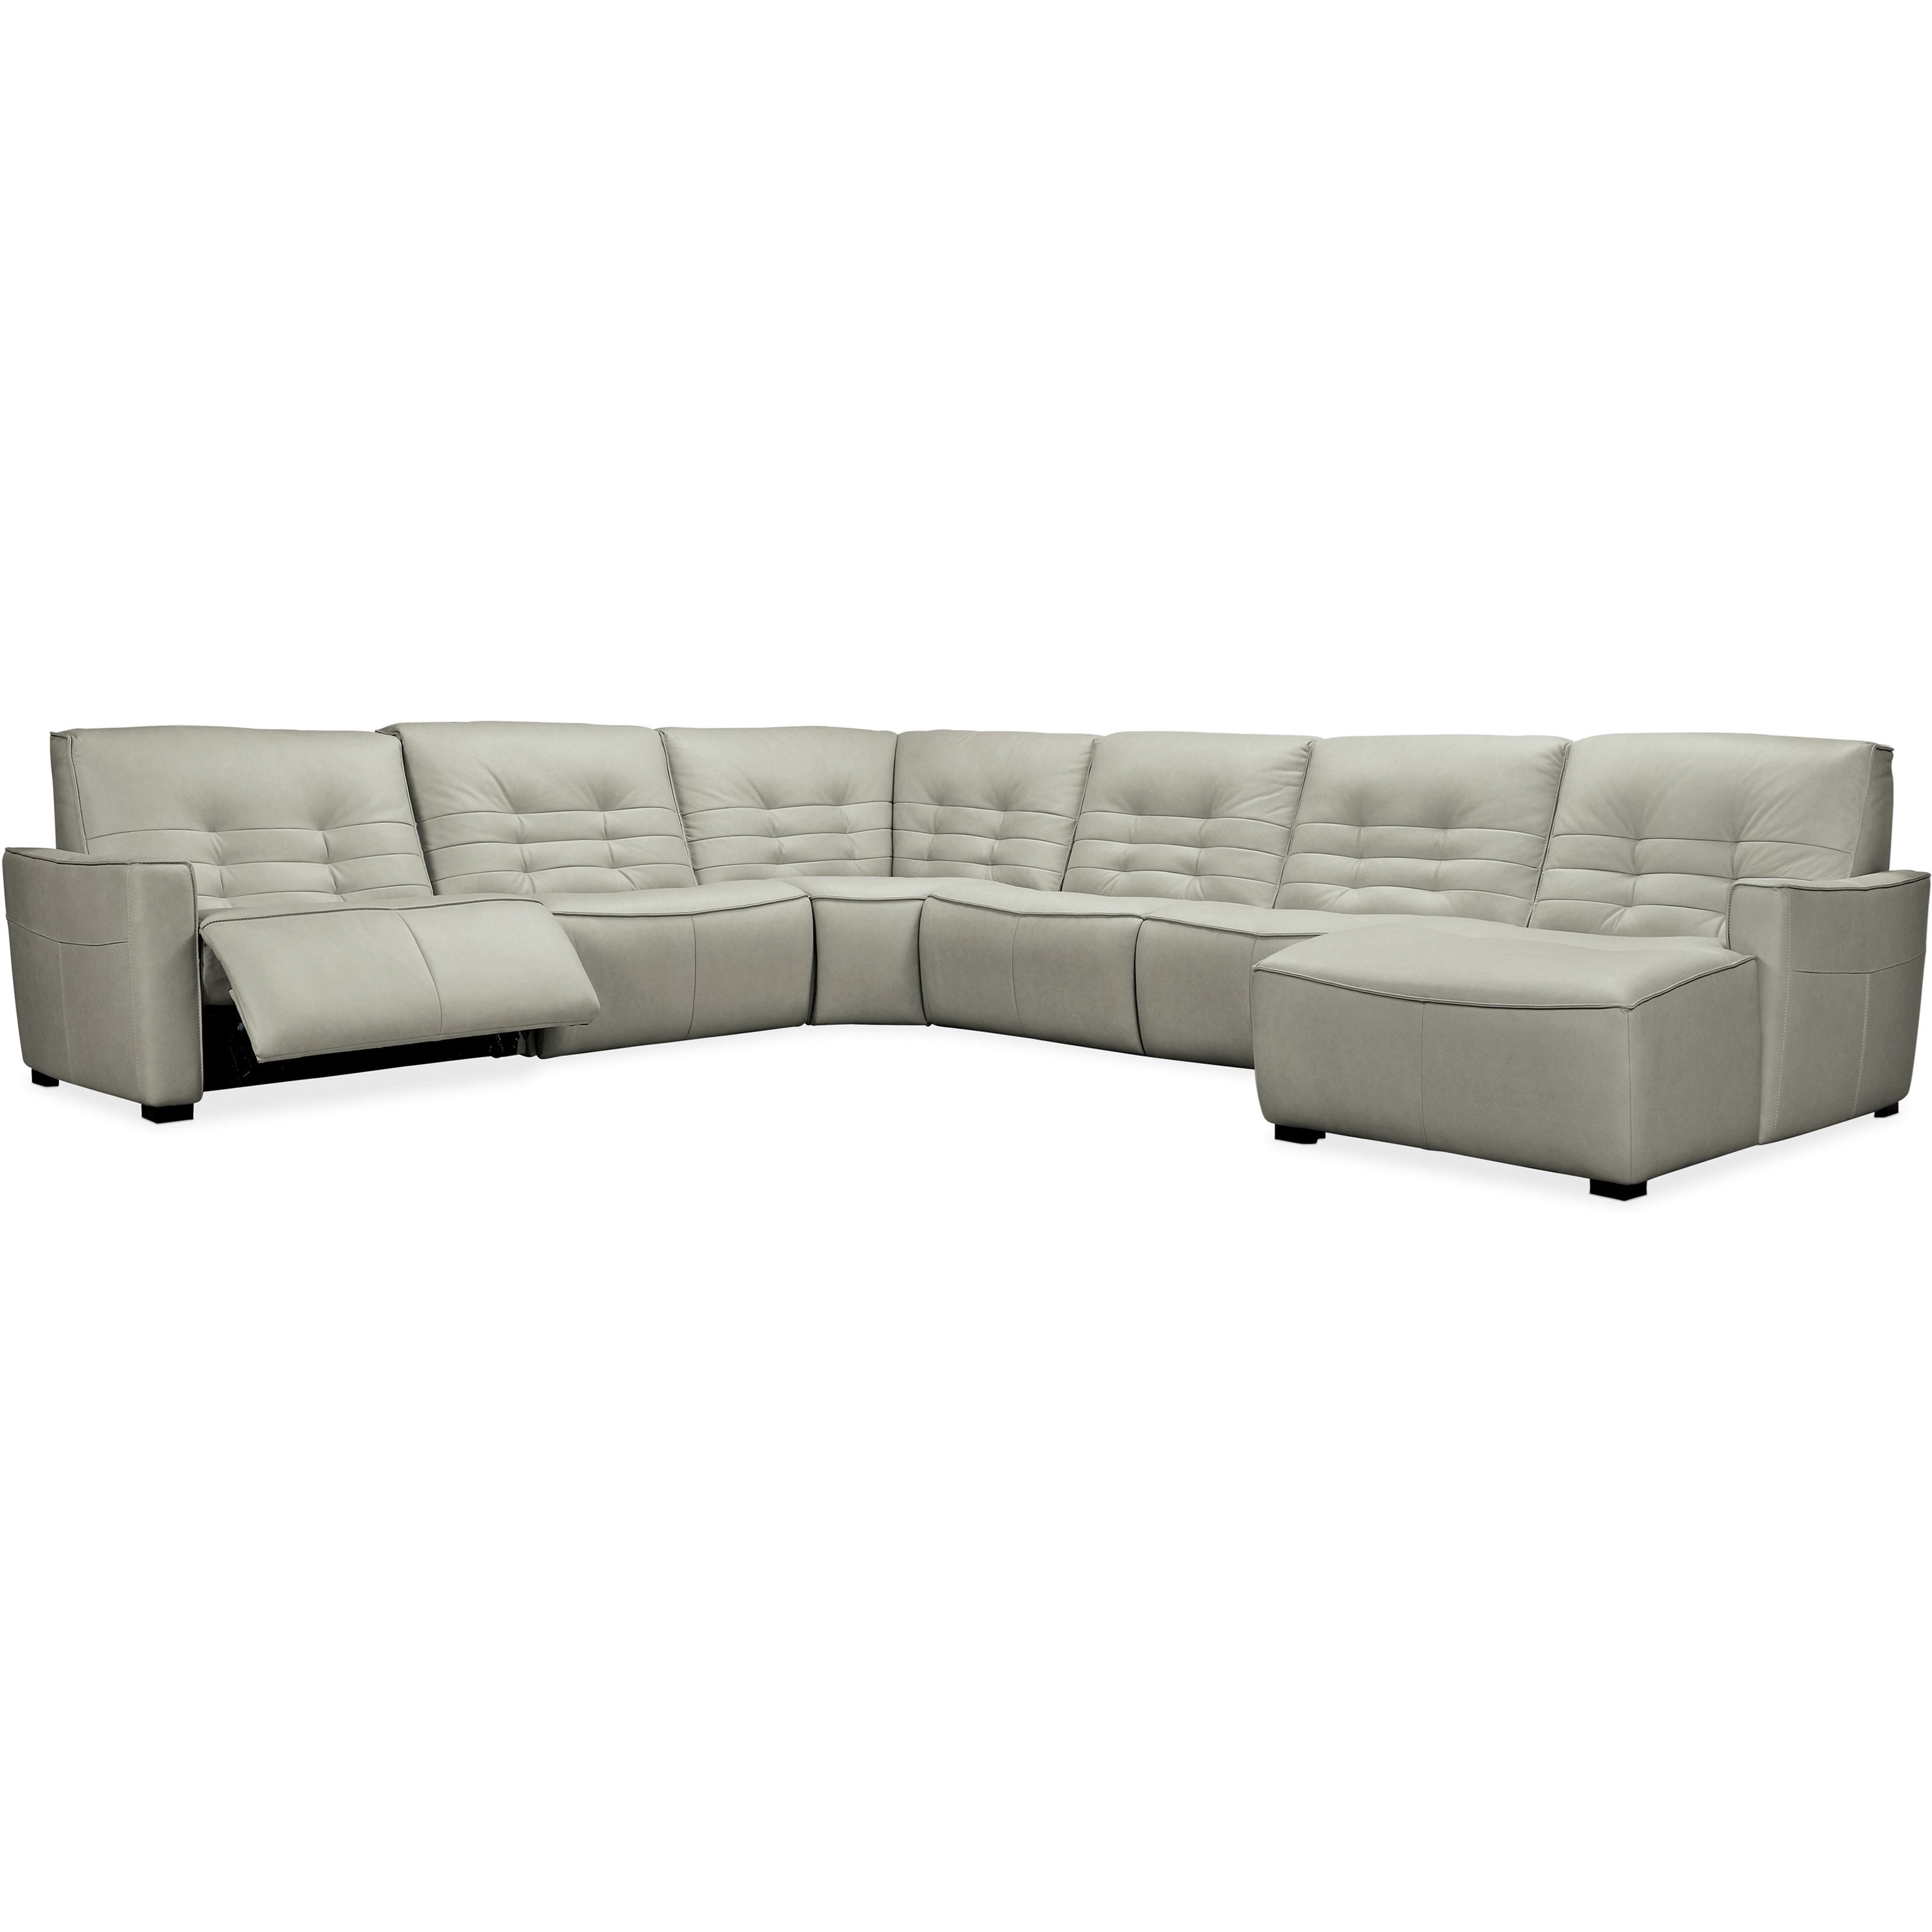 Reaux 6-Piece Power Sectional with RAF Chaise by Hooker Furniture at Zak's Home